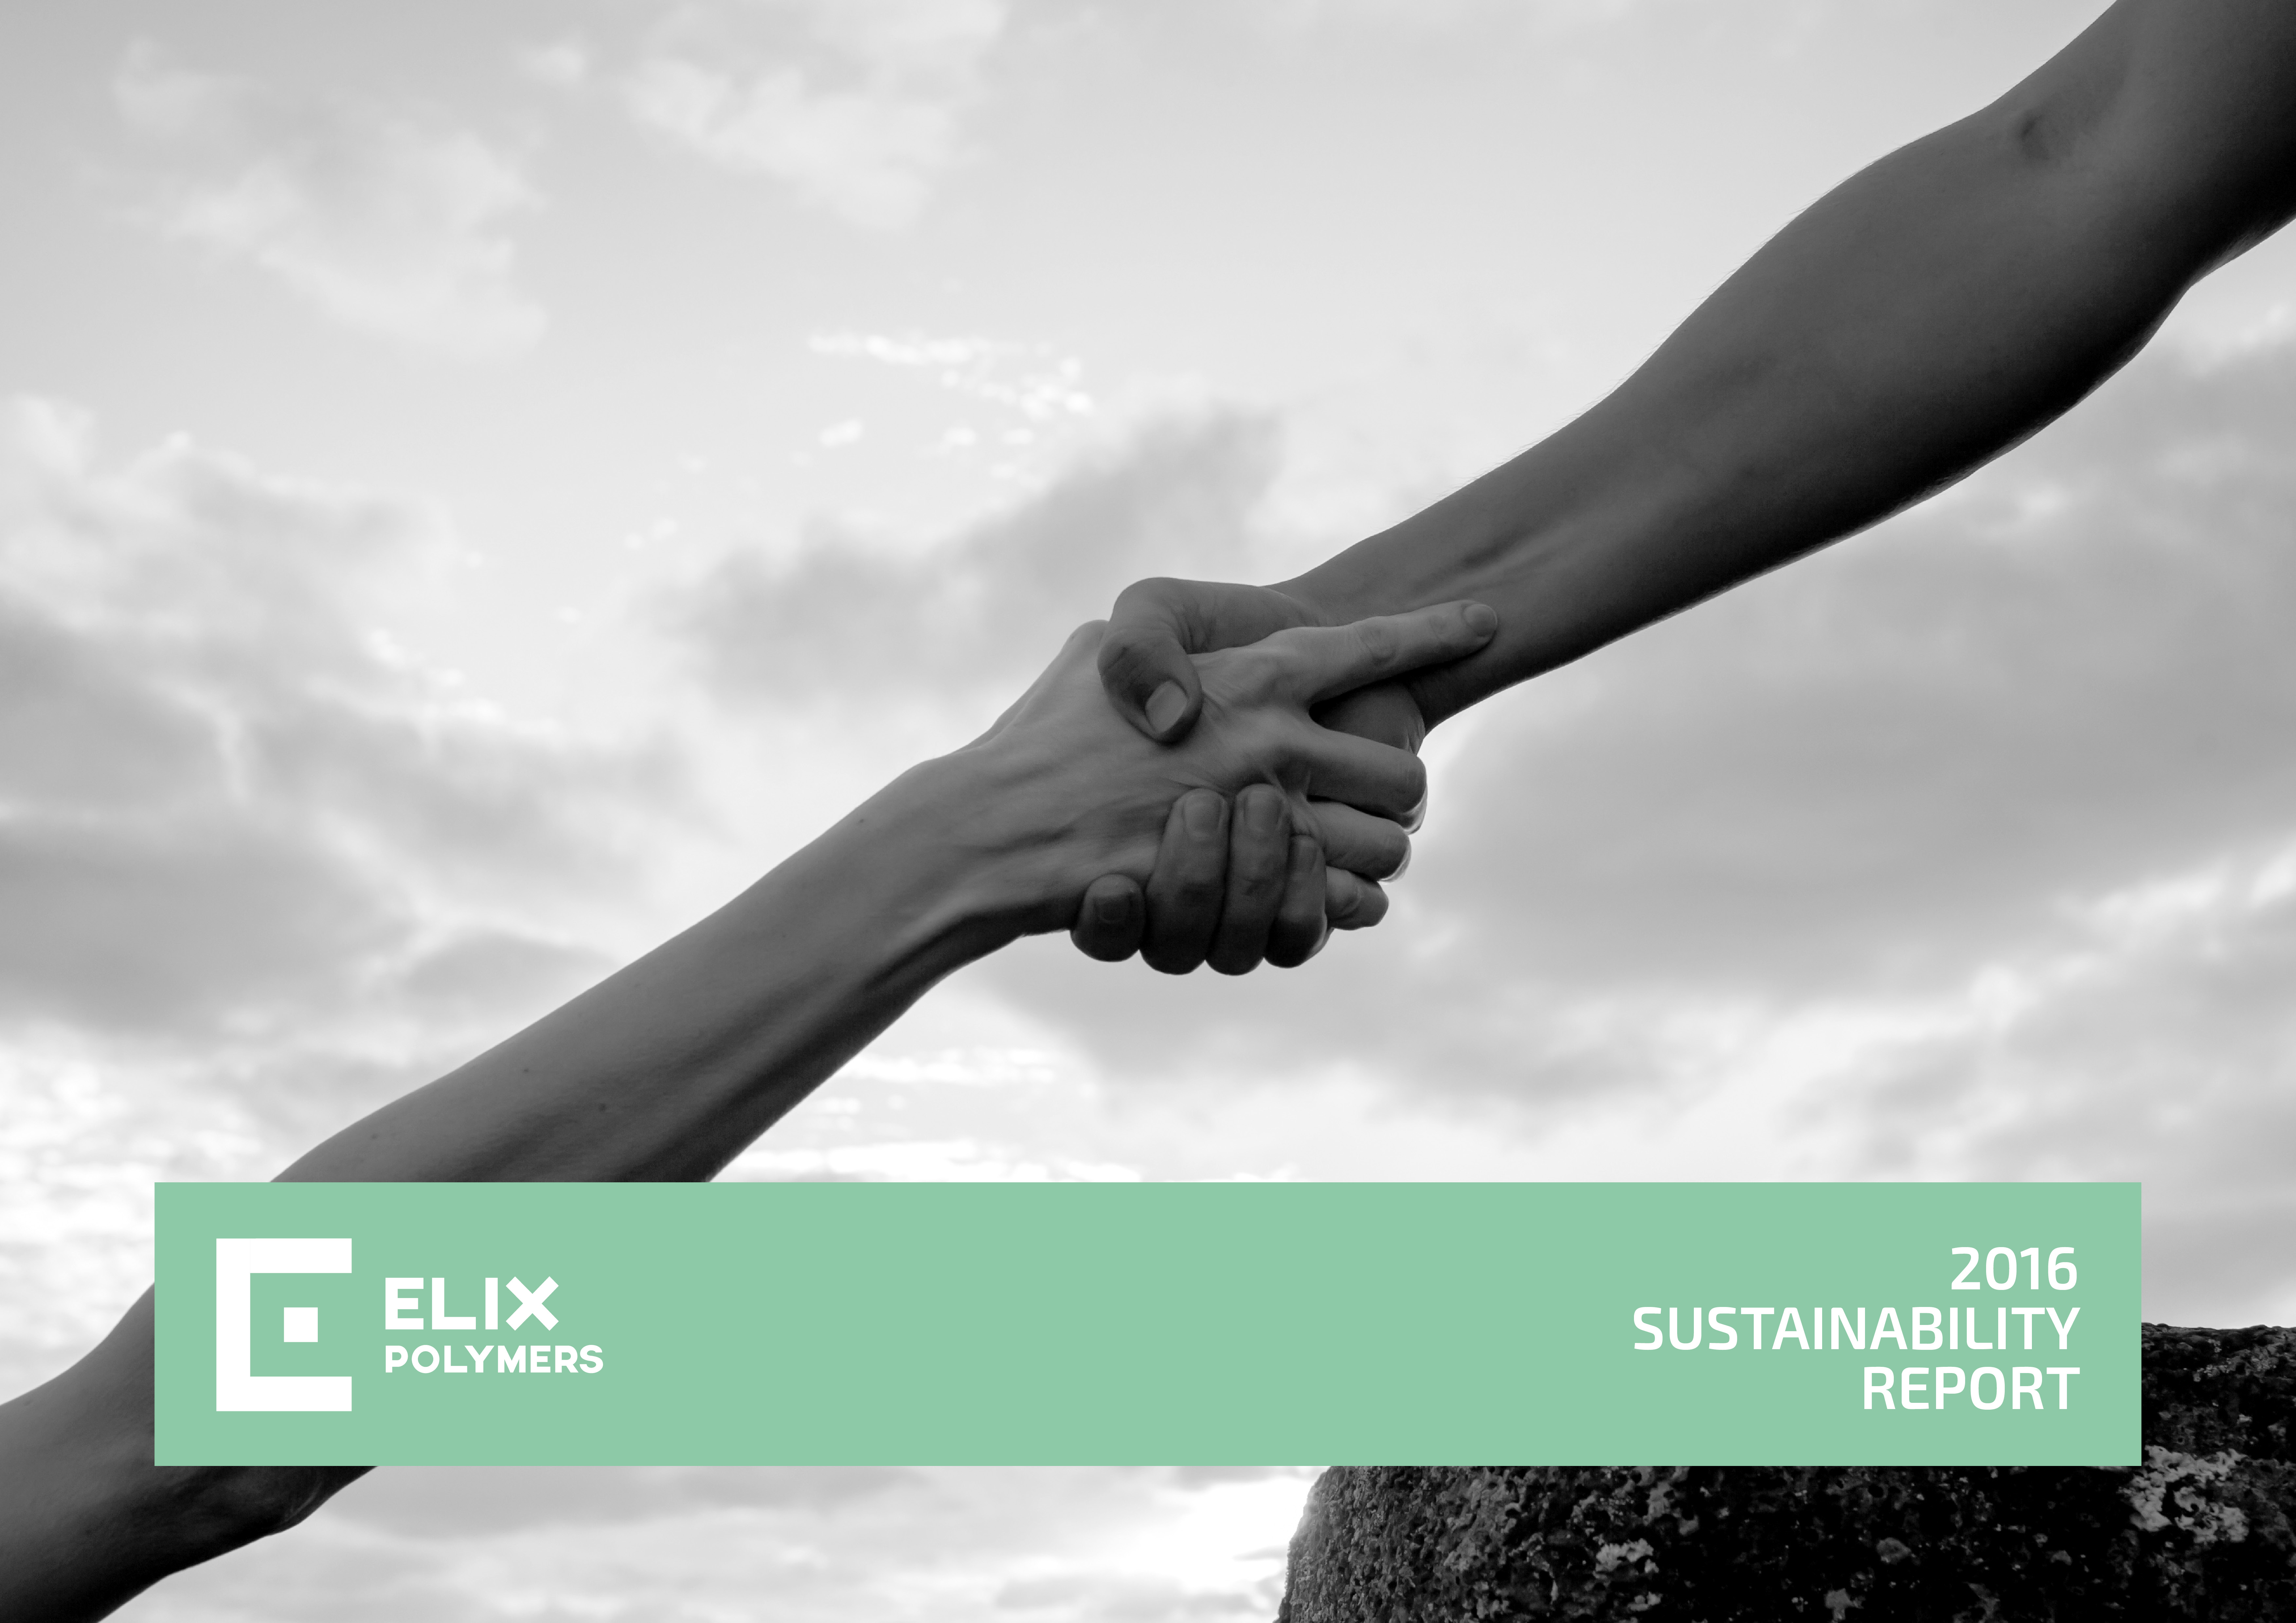 ELIX Polymers first Sustainability Report